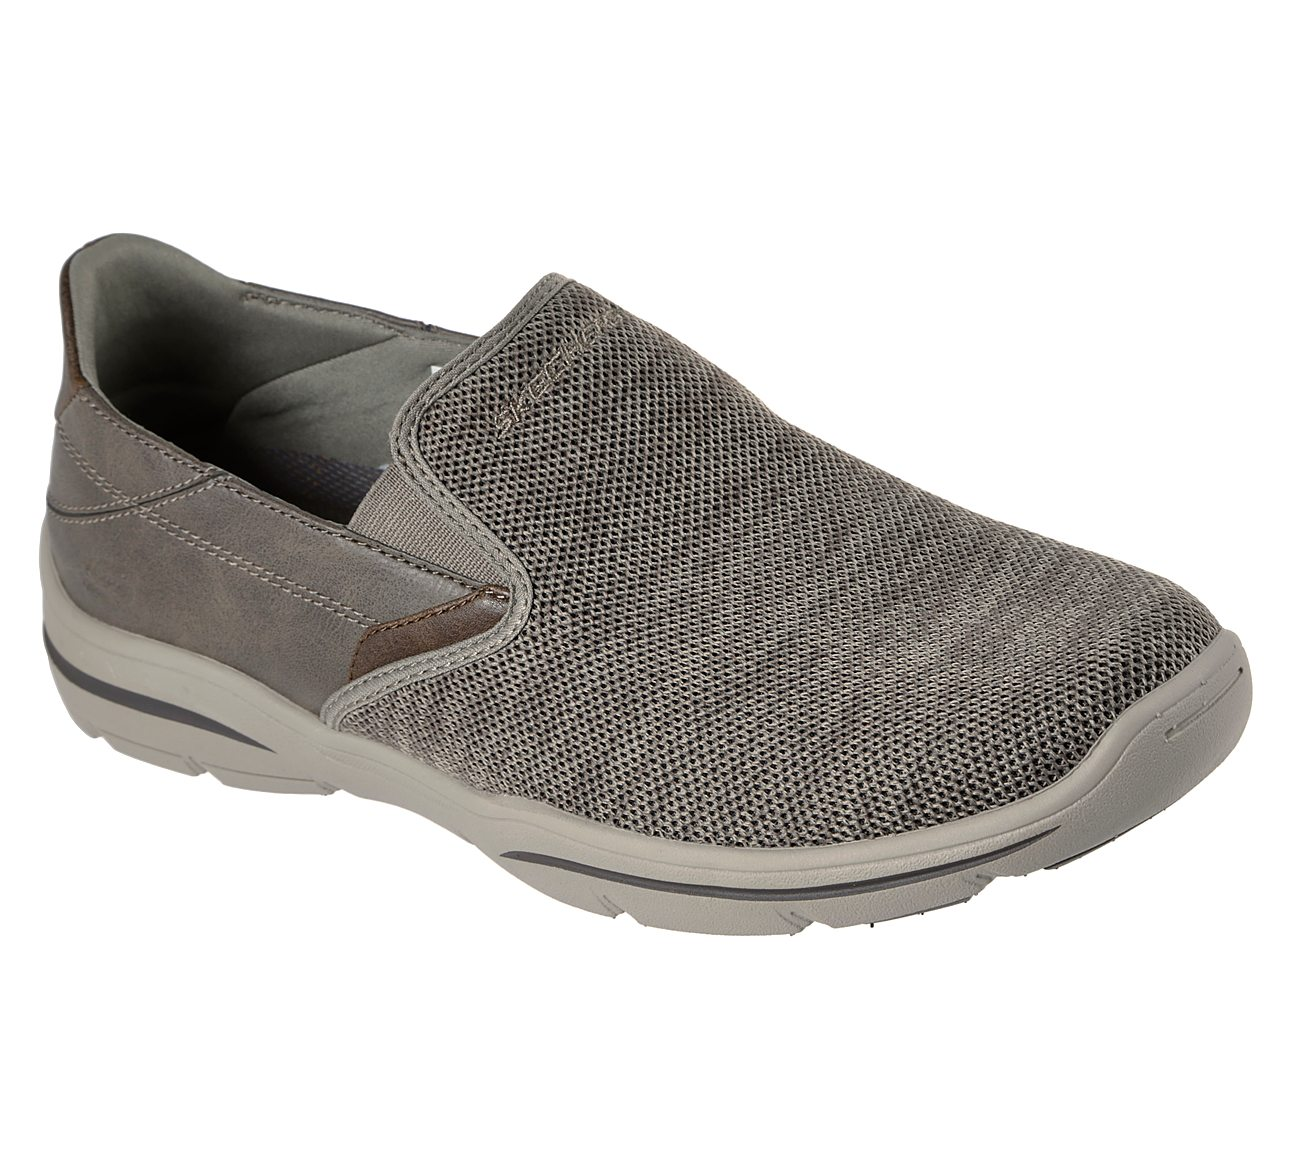 Men's Relaxed Fit: Harper - Merson cheap sale geniue stockist outlet wiki pre order cheap price discount popular outlet new GarOG